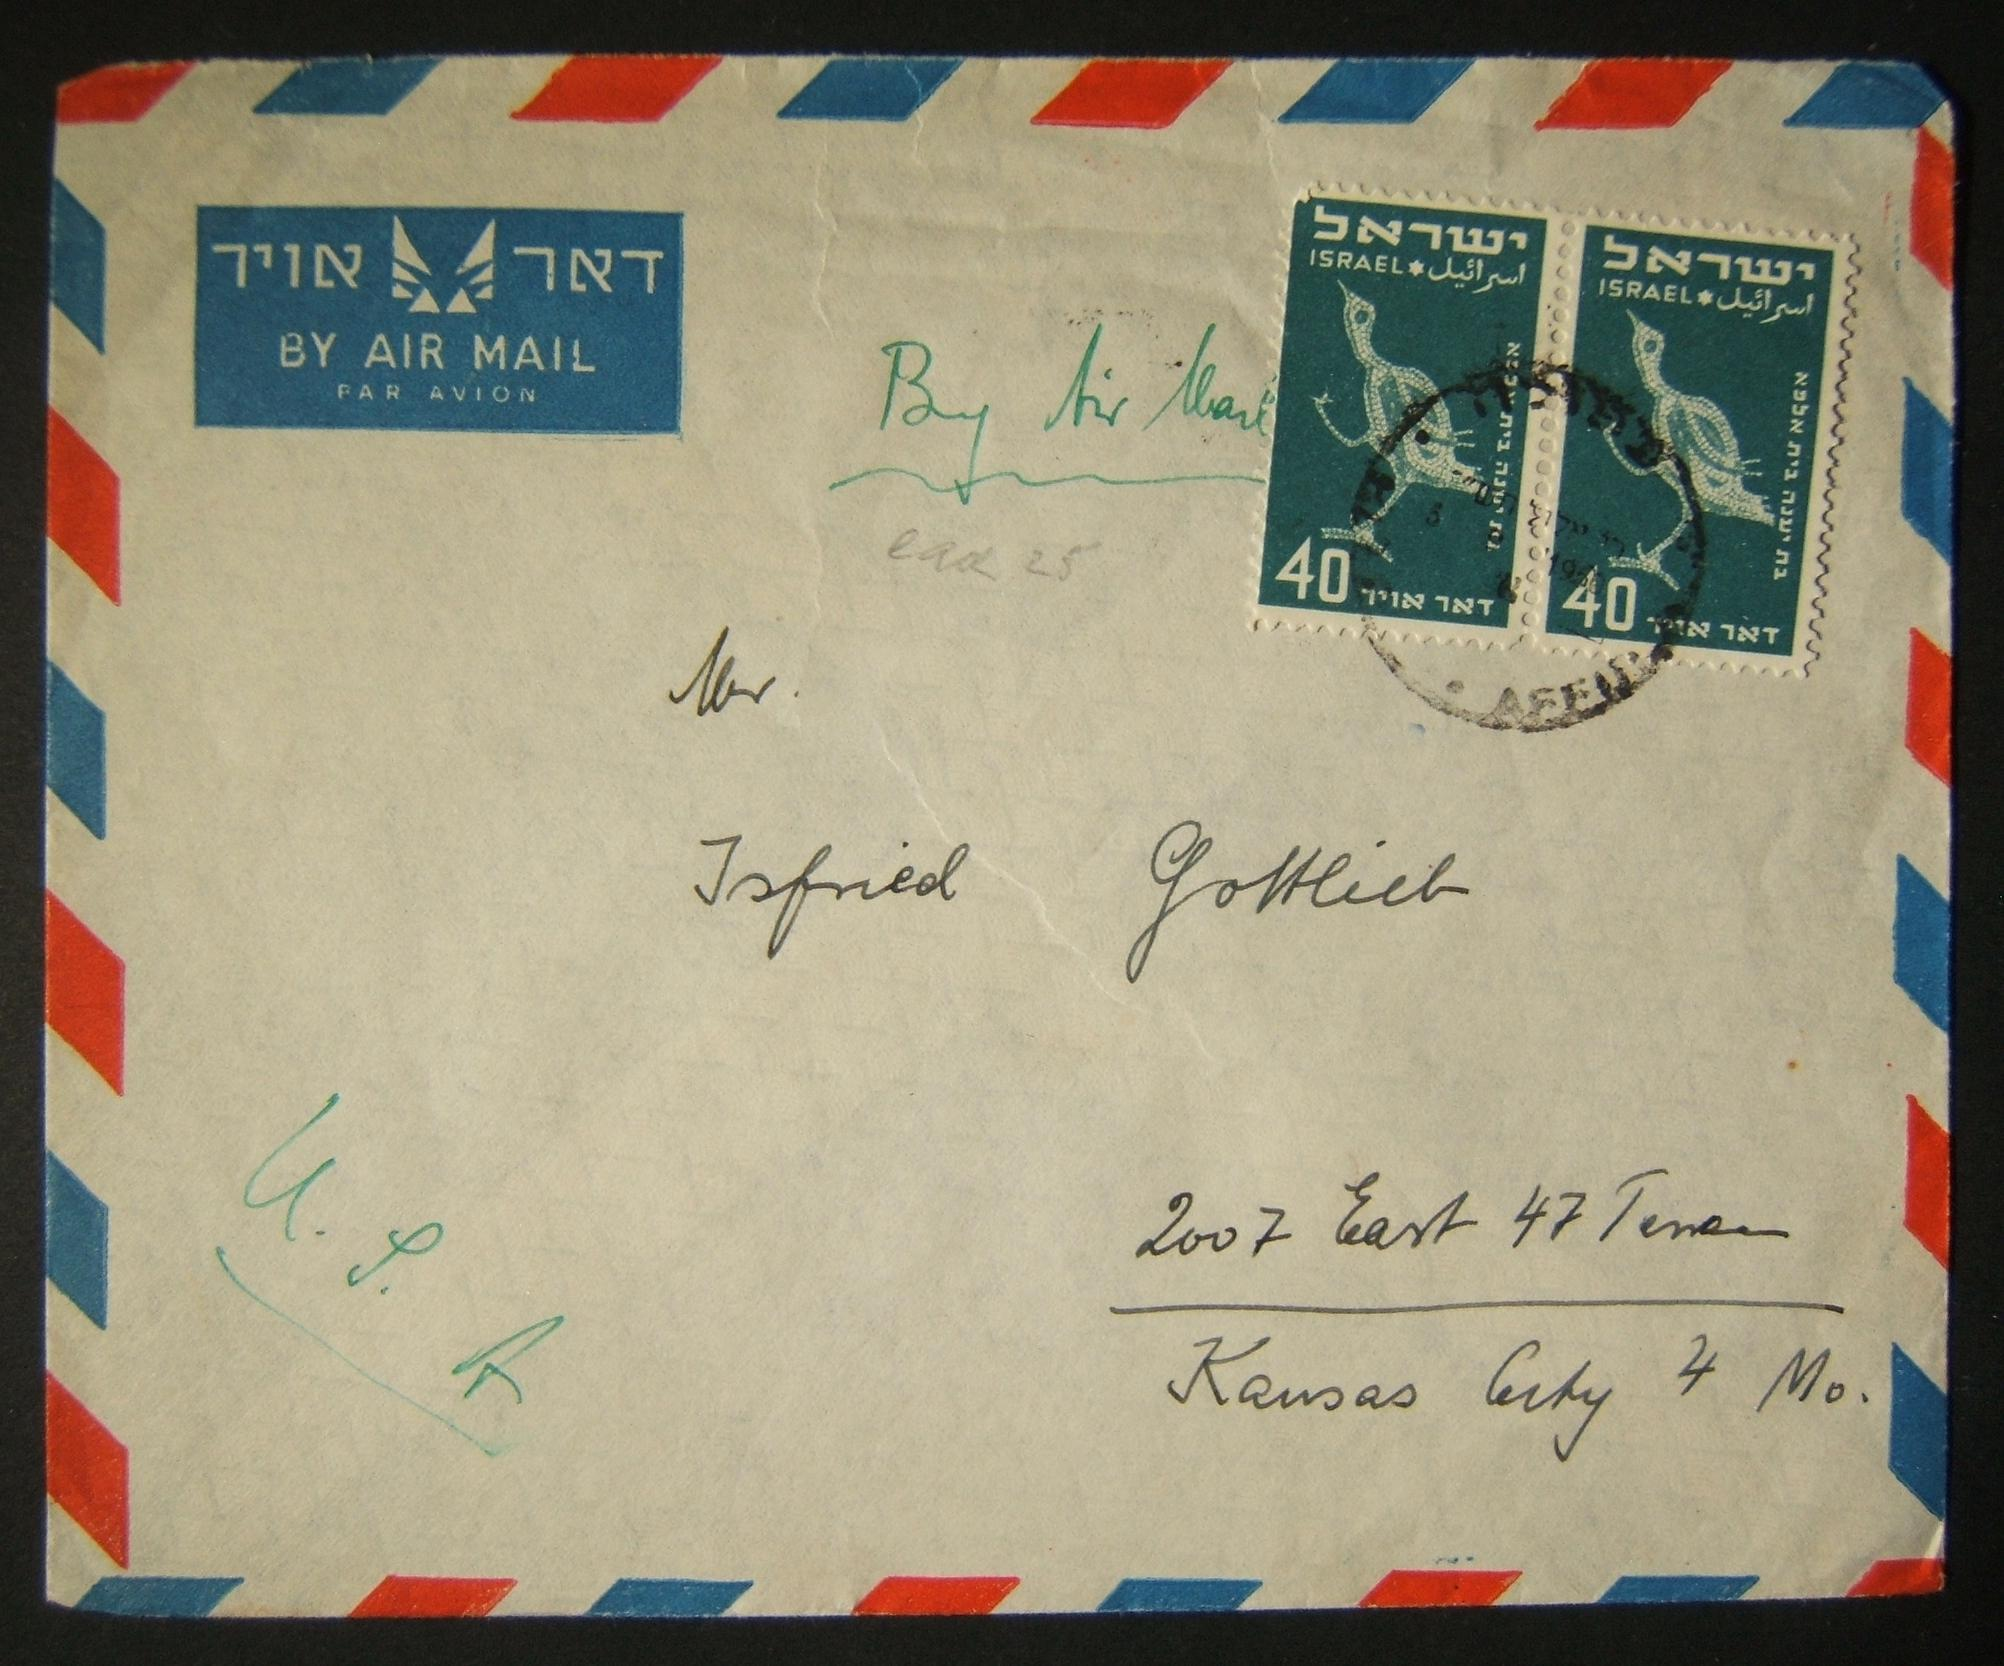 1950 1st airmail / PO's, rates & routes: 5-9-1950